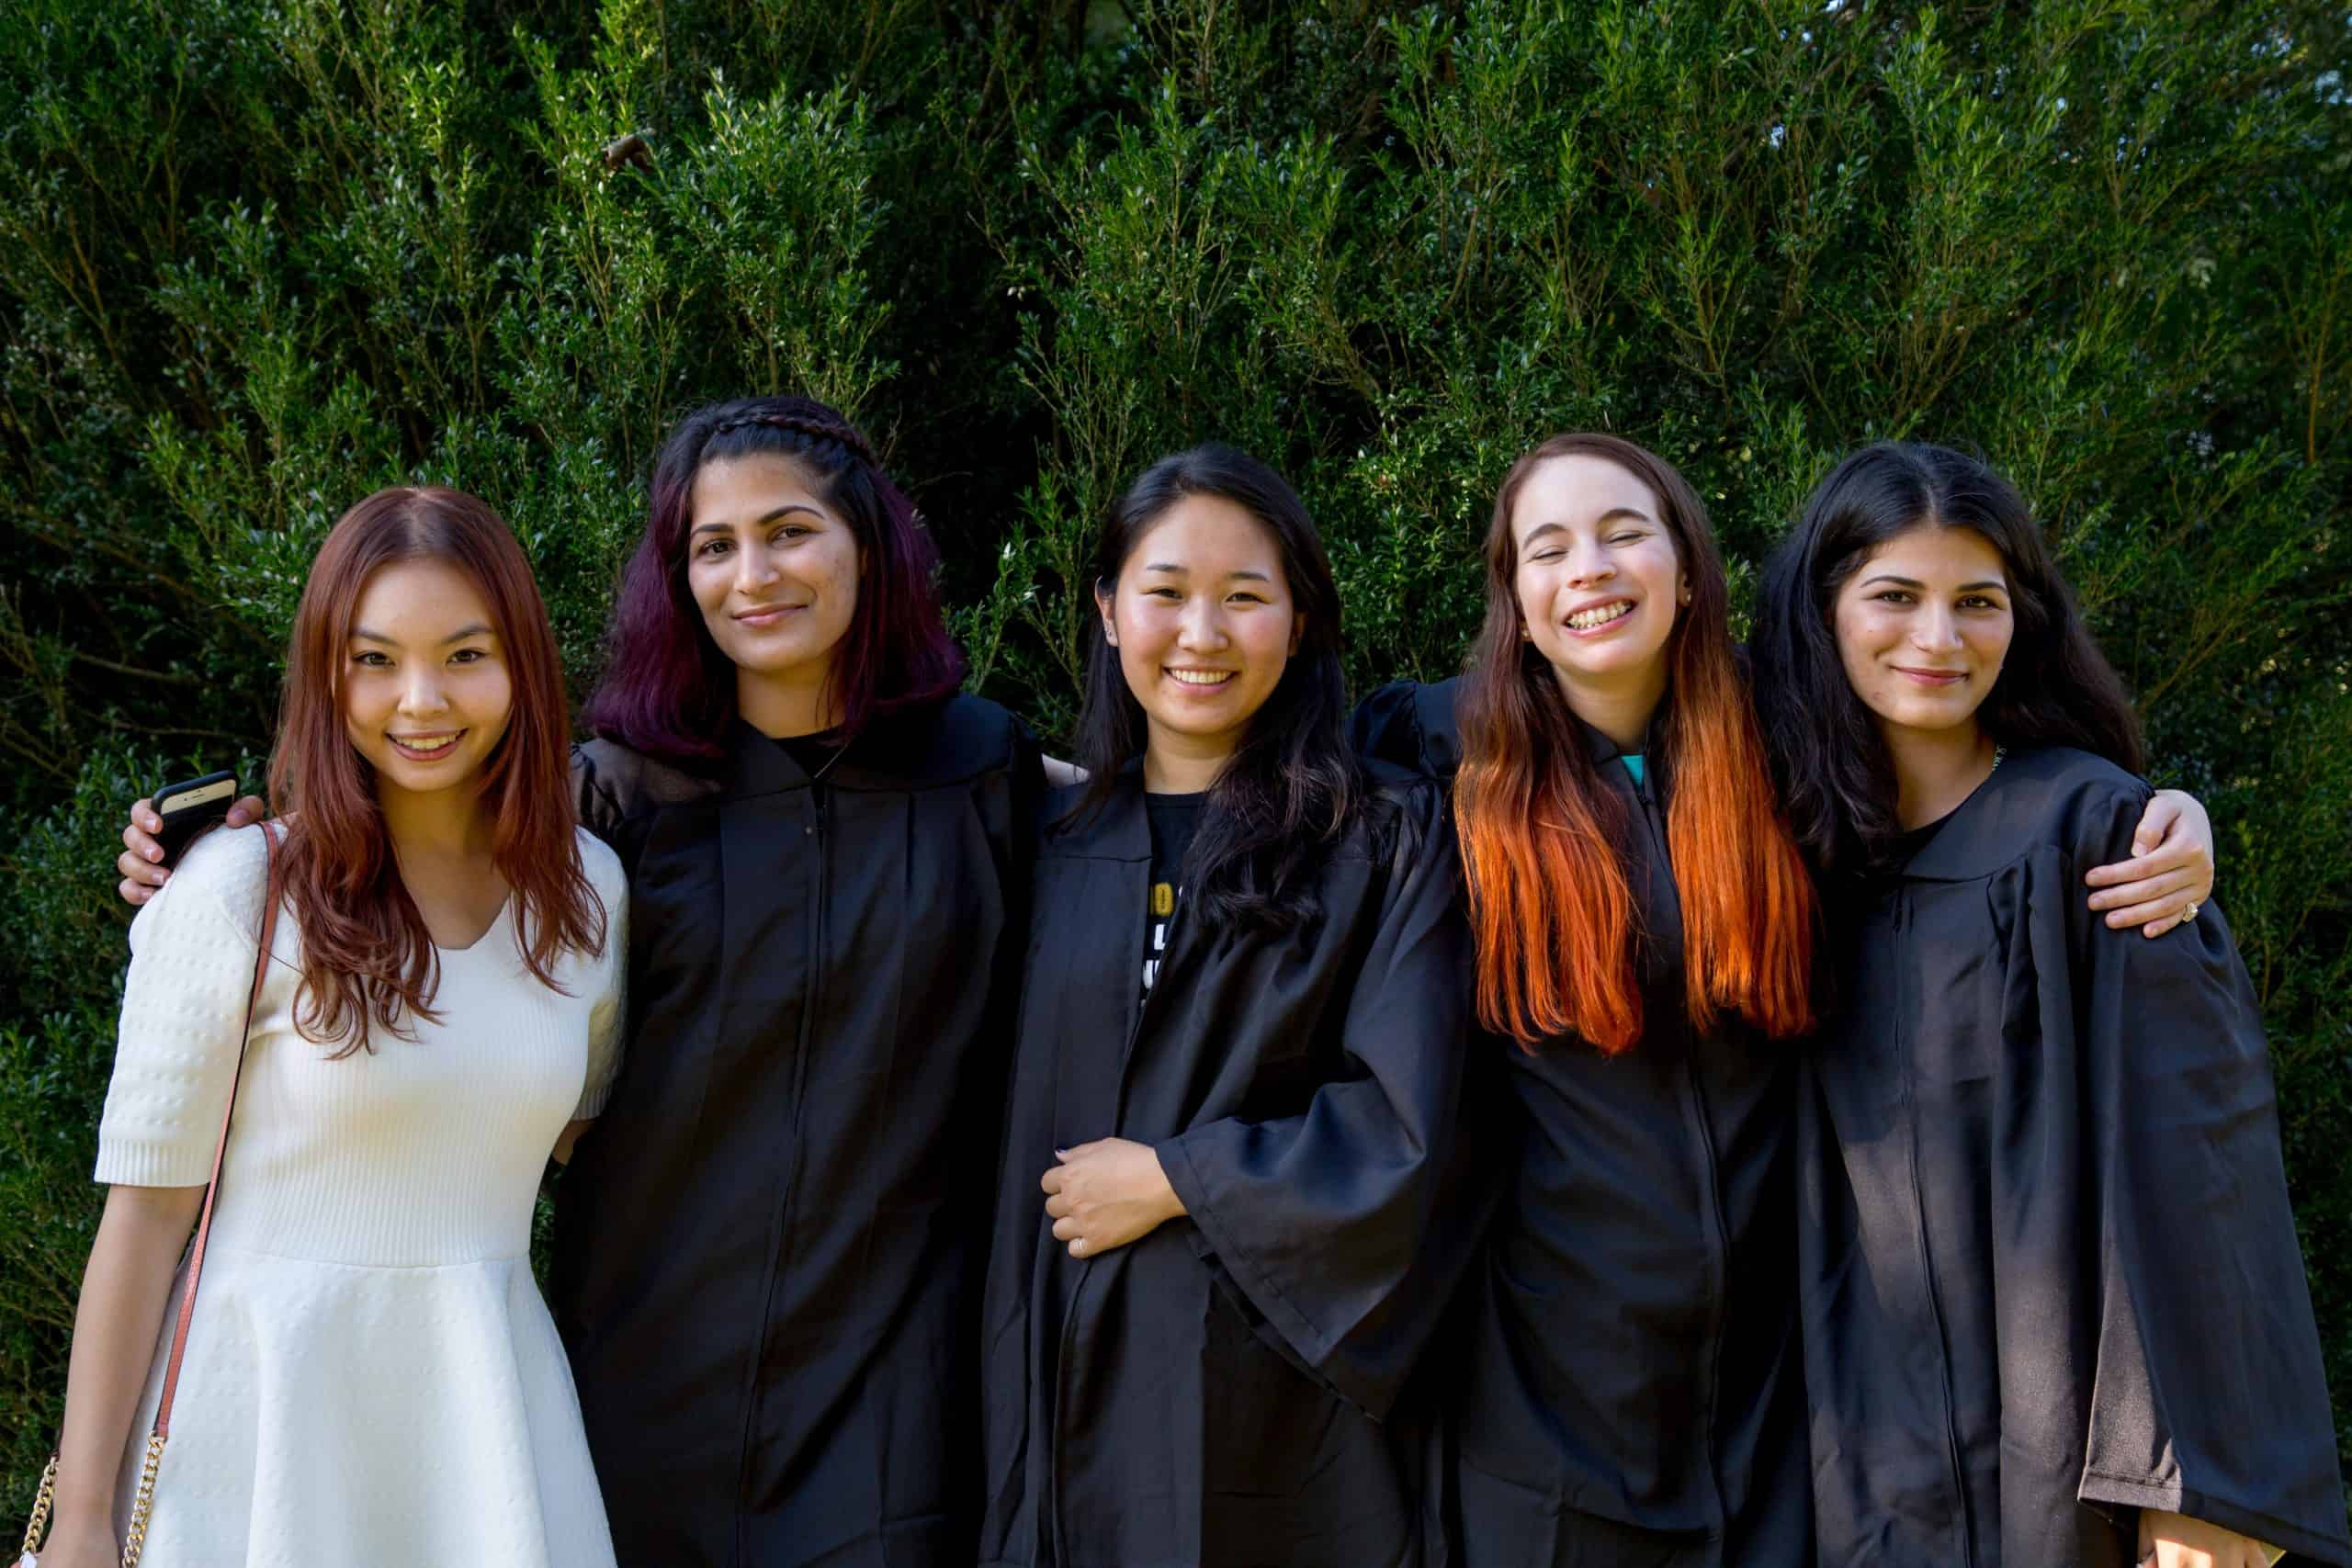 A group of five students wearing graduation robes pose